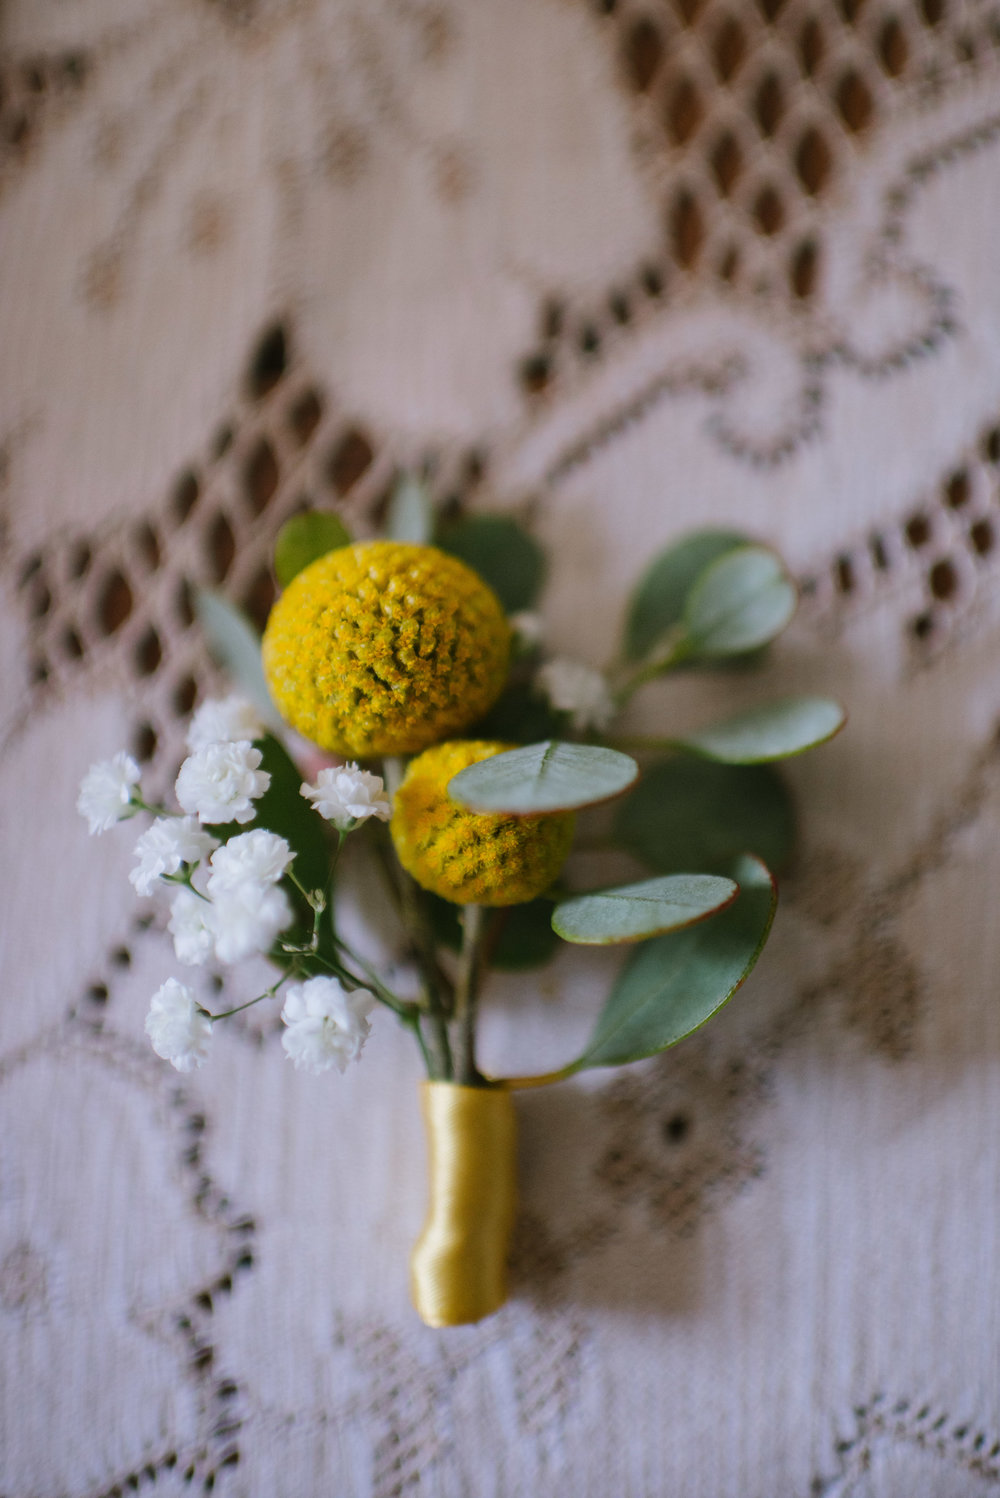 // boutonnières //   Stylish floral decorations, typically worn through the buttonhole (Fr: boutonniere) of a suit jacket or pinned to a lapel. Usually a single bud or small grouping of blooms worn by grooms, groomsmen, fathers and grandfathers, ushers, et al.